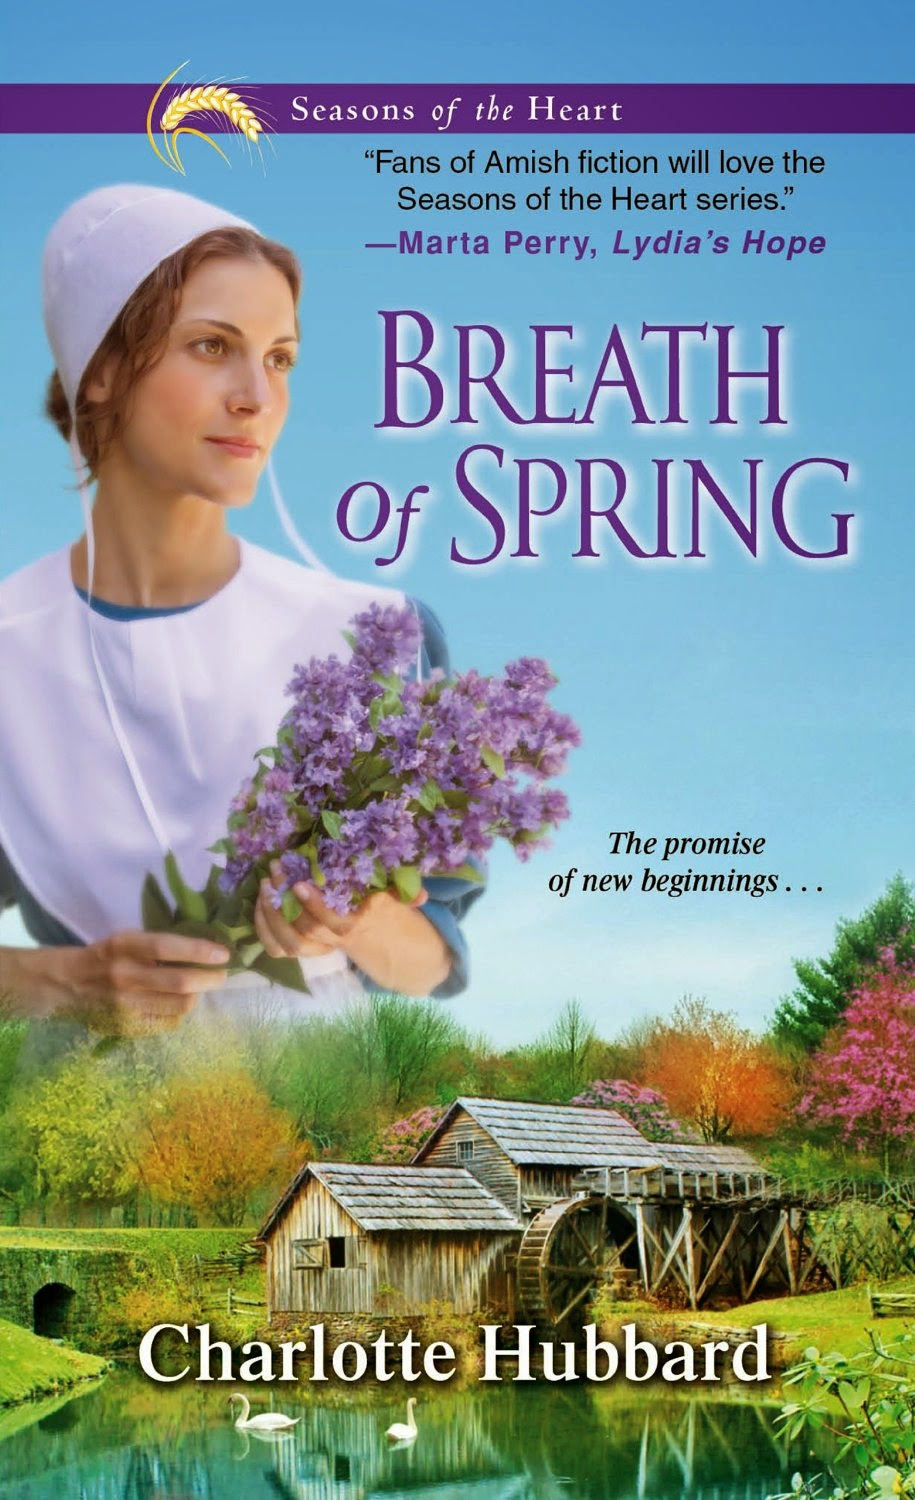 http://www.amazon.com/Breath-Spring-Seasons-Charlotte-Hubbard-ebook/dp/B00G9ABZOA/ref=sr_1_1?s=digital-text&ie=UTF8&qid=1400246224&sr=1-1&keywords=breath+of+spring